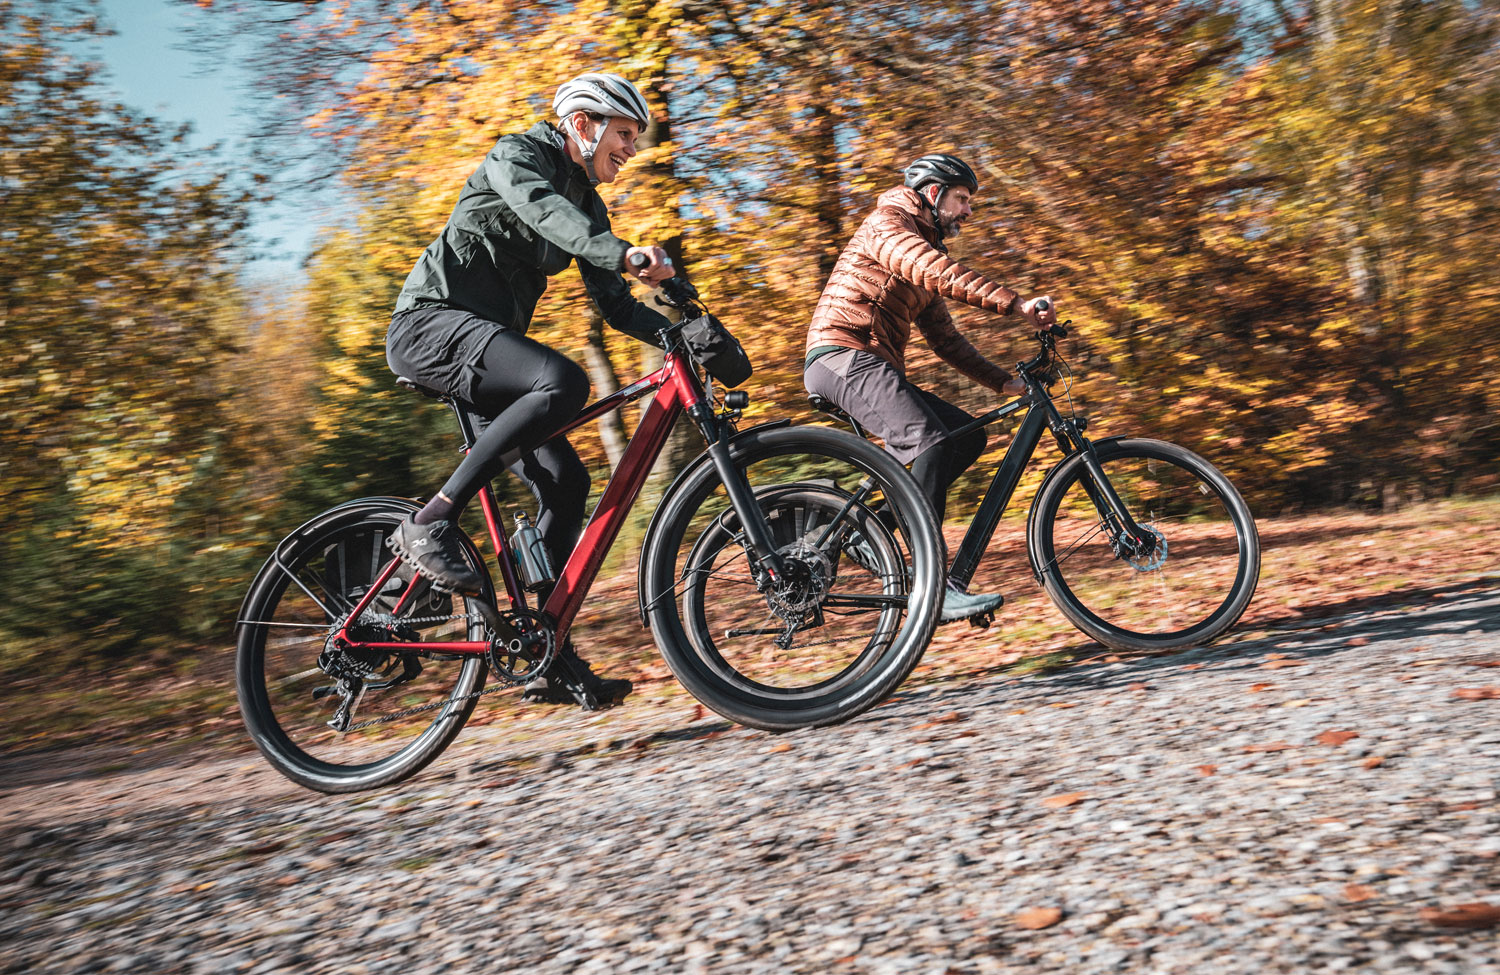 For the city and adventures: Coboc's new all-round e-bike Iseo with suspension